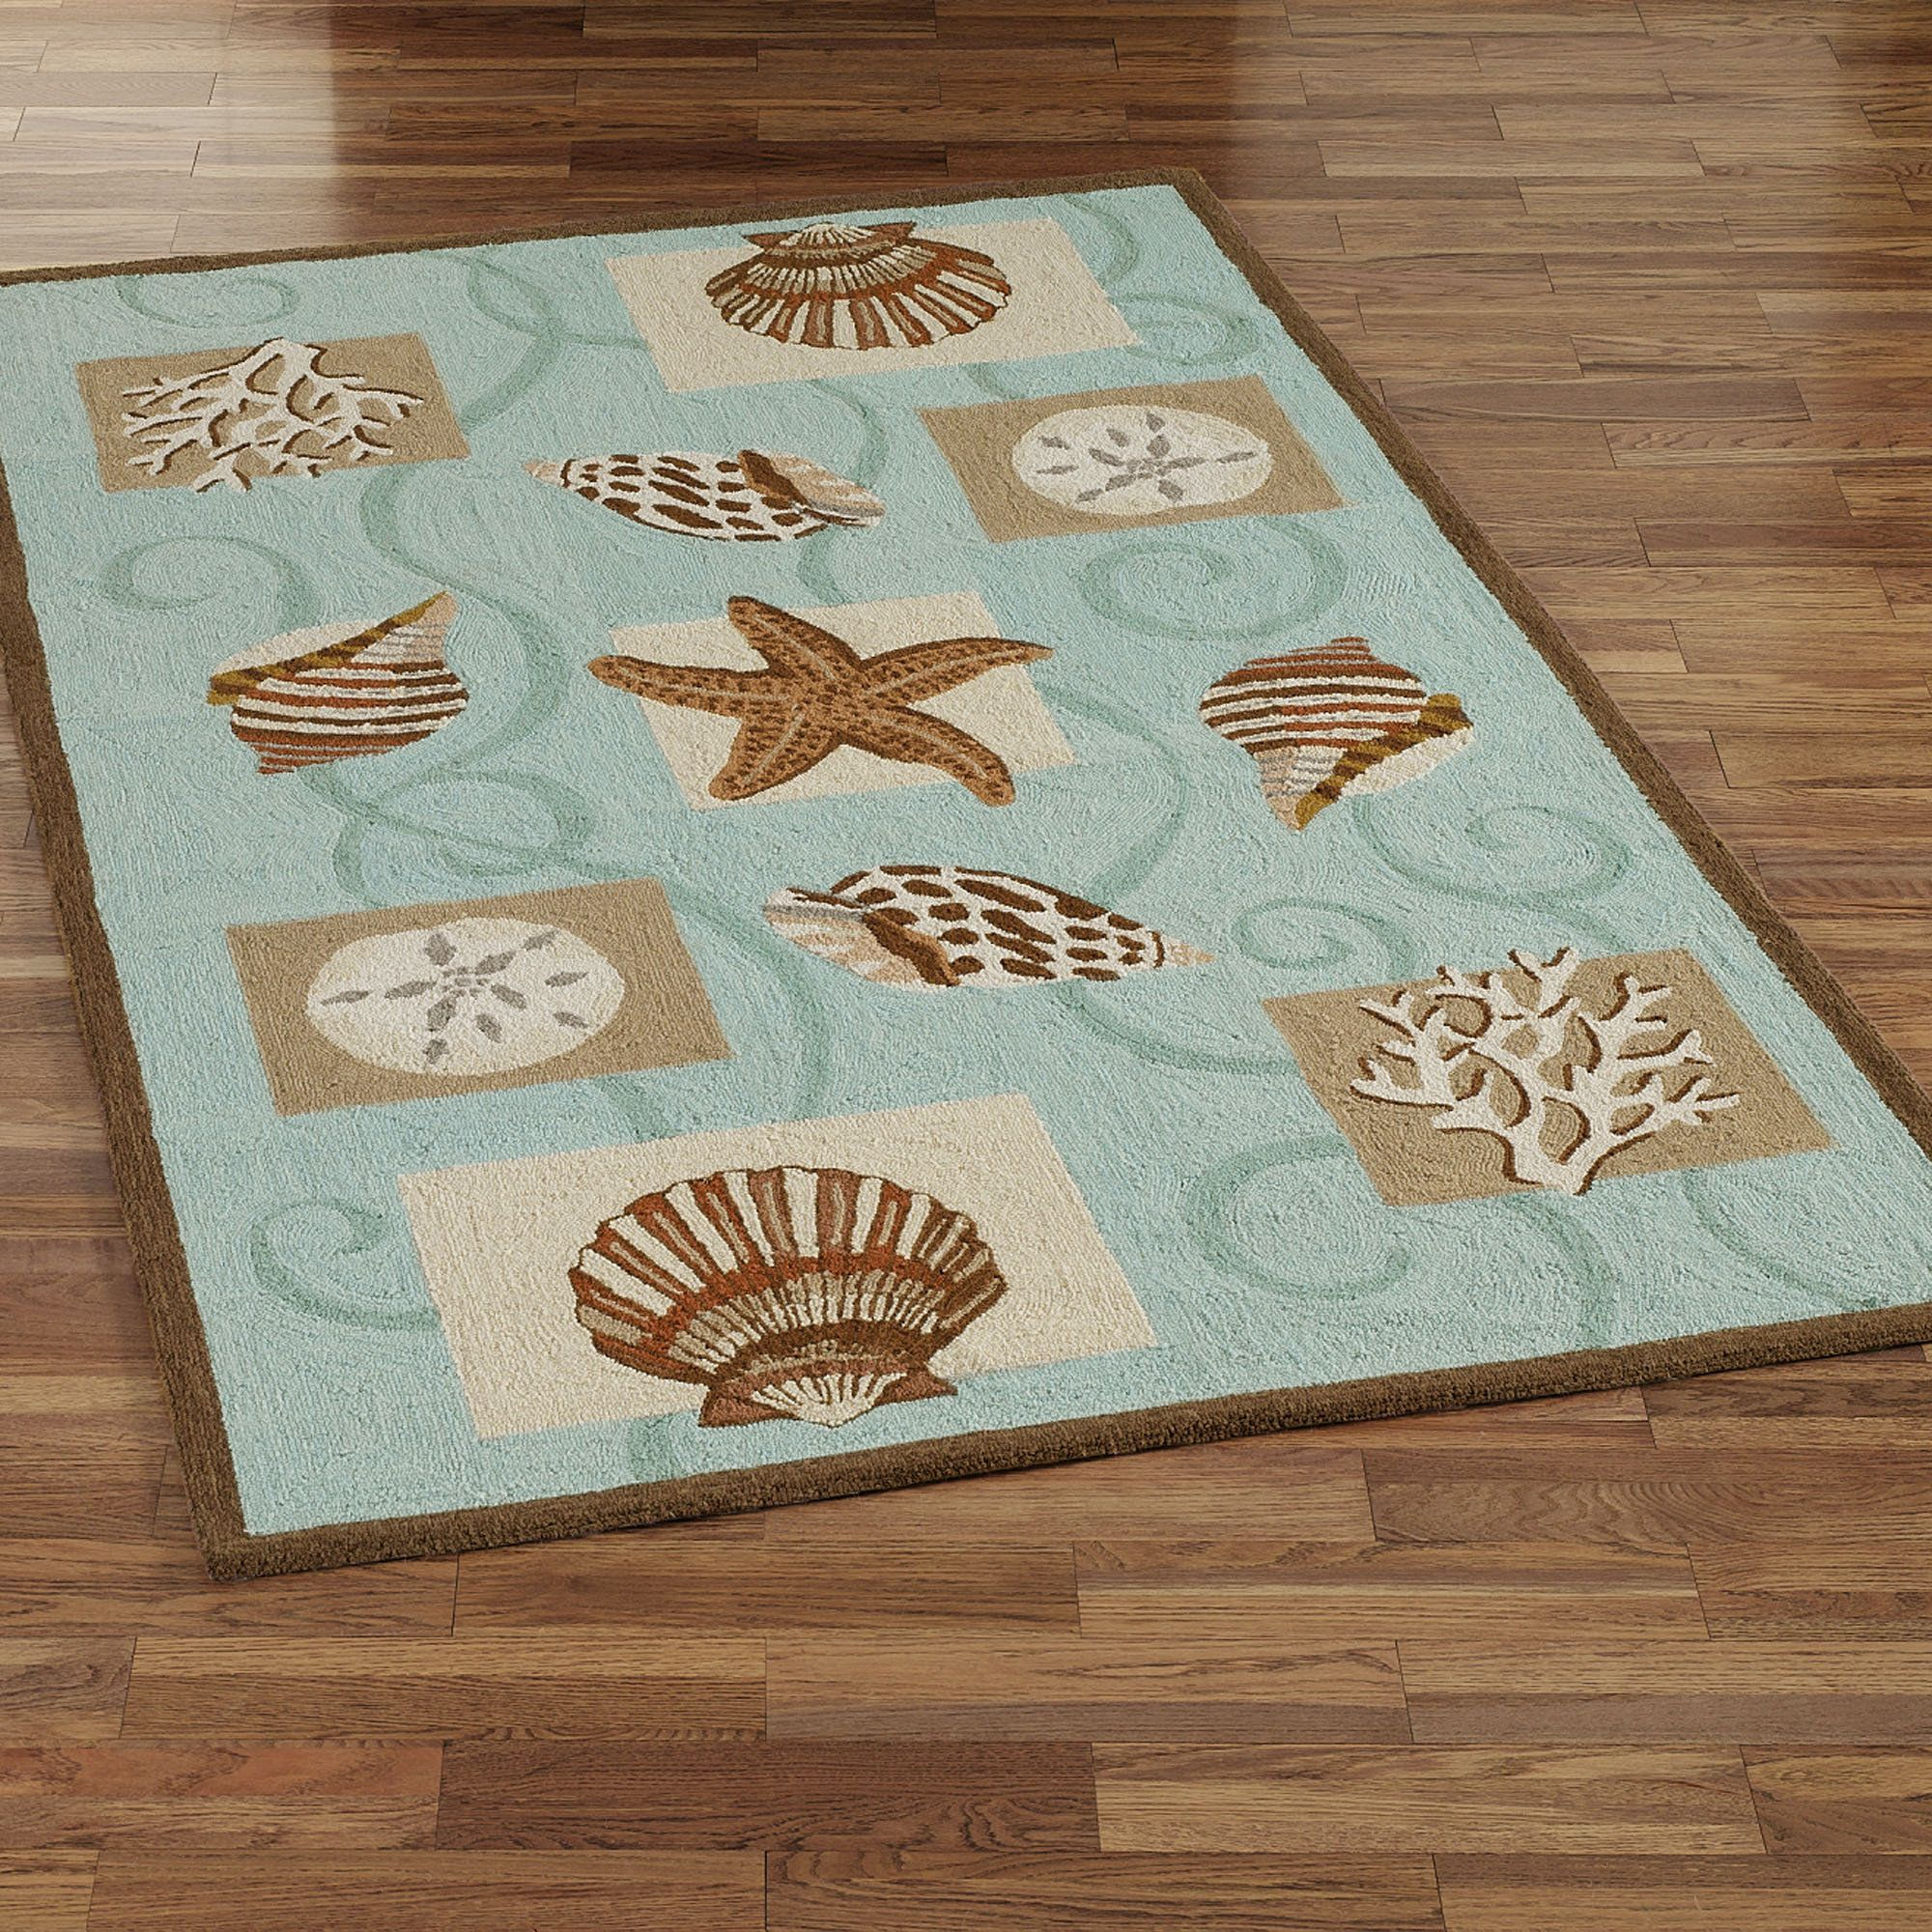 Sea Shell Hooked Wool Area Rugs Shell Aqua And Beach Themed - Turquoise bathroom mats for bathroom decorating ideas